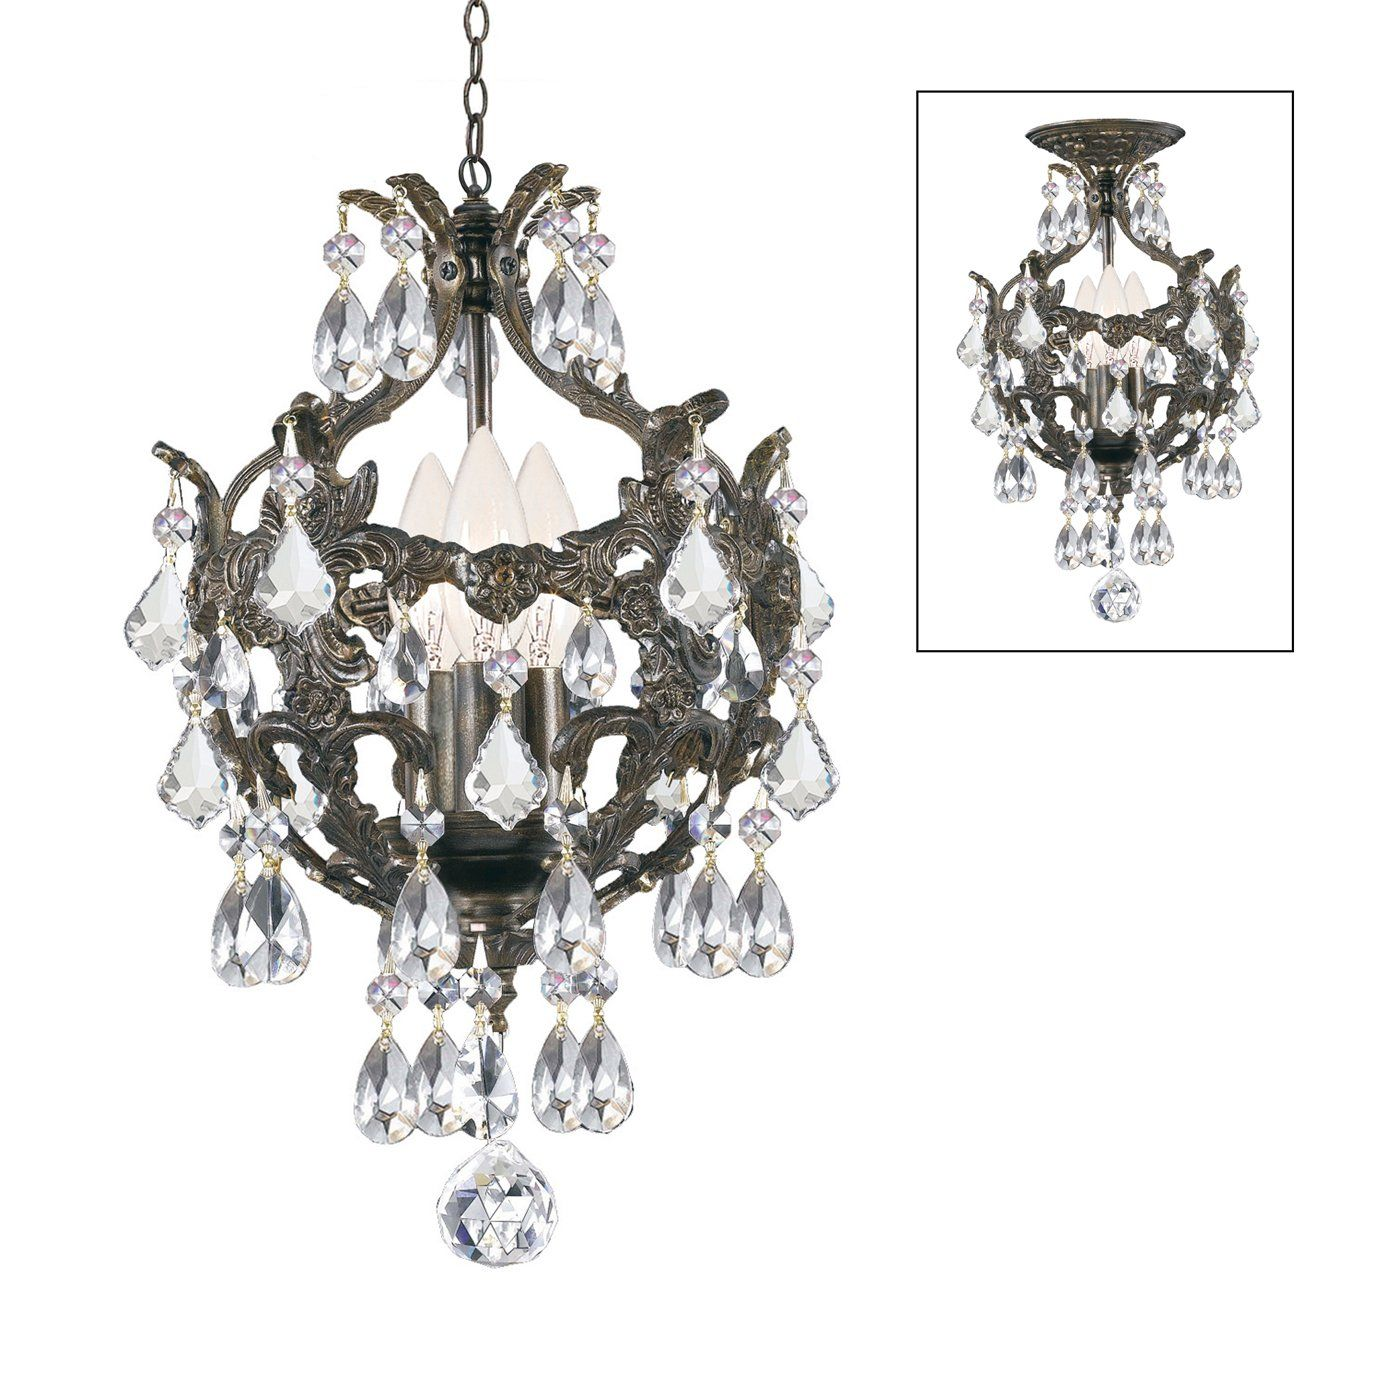 Crystorama Lighting 5193-EB-CL-MWP 3 Light Legacy MiniChandelier Chandelier, English Bronze- lighting universe